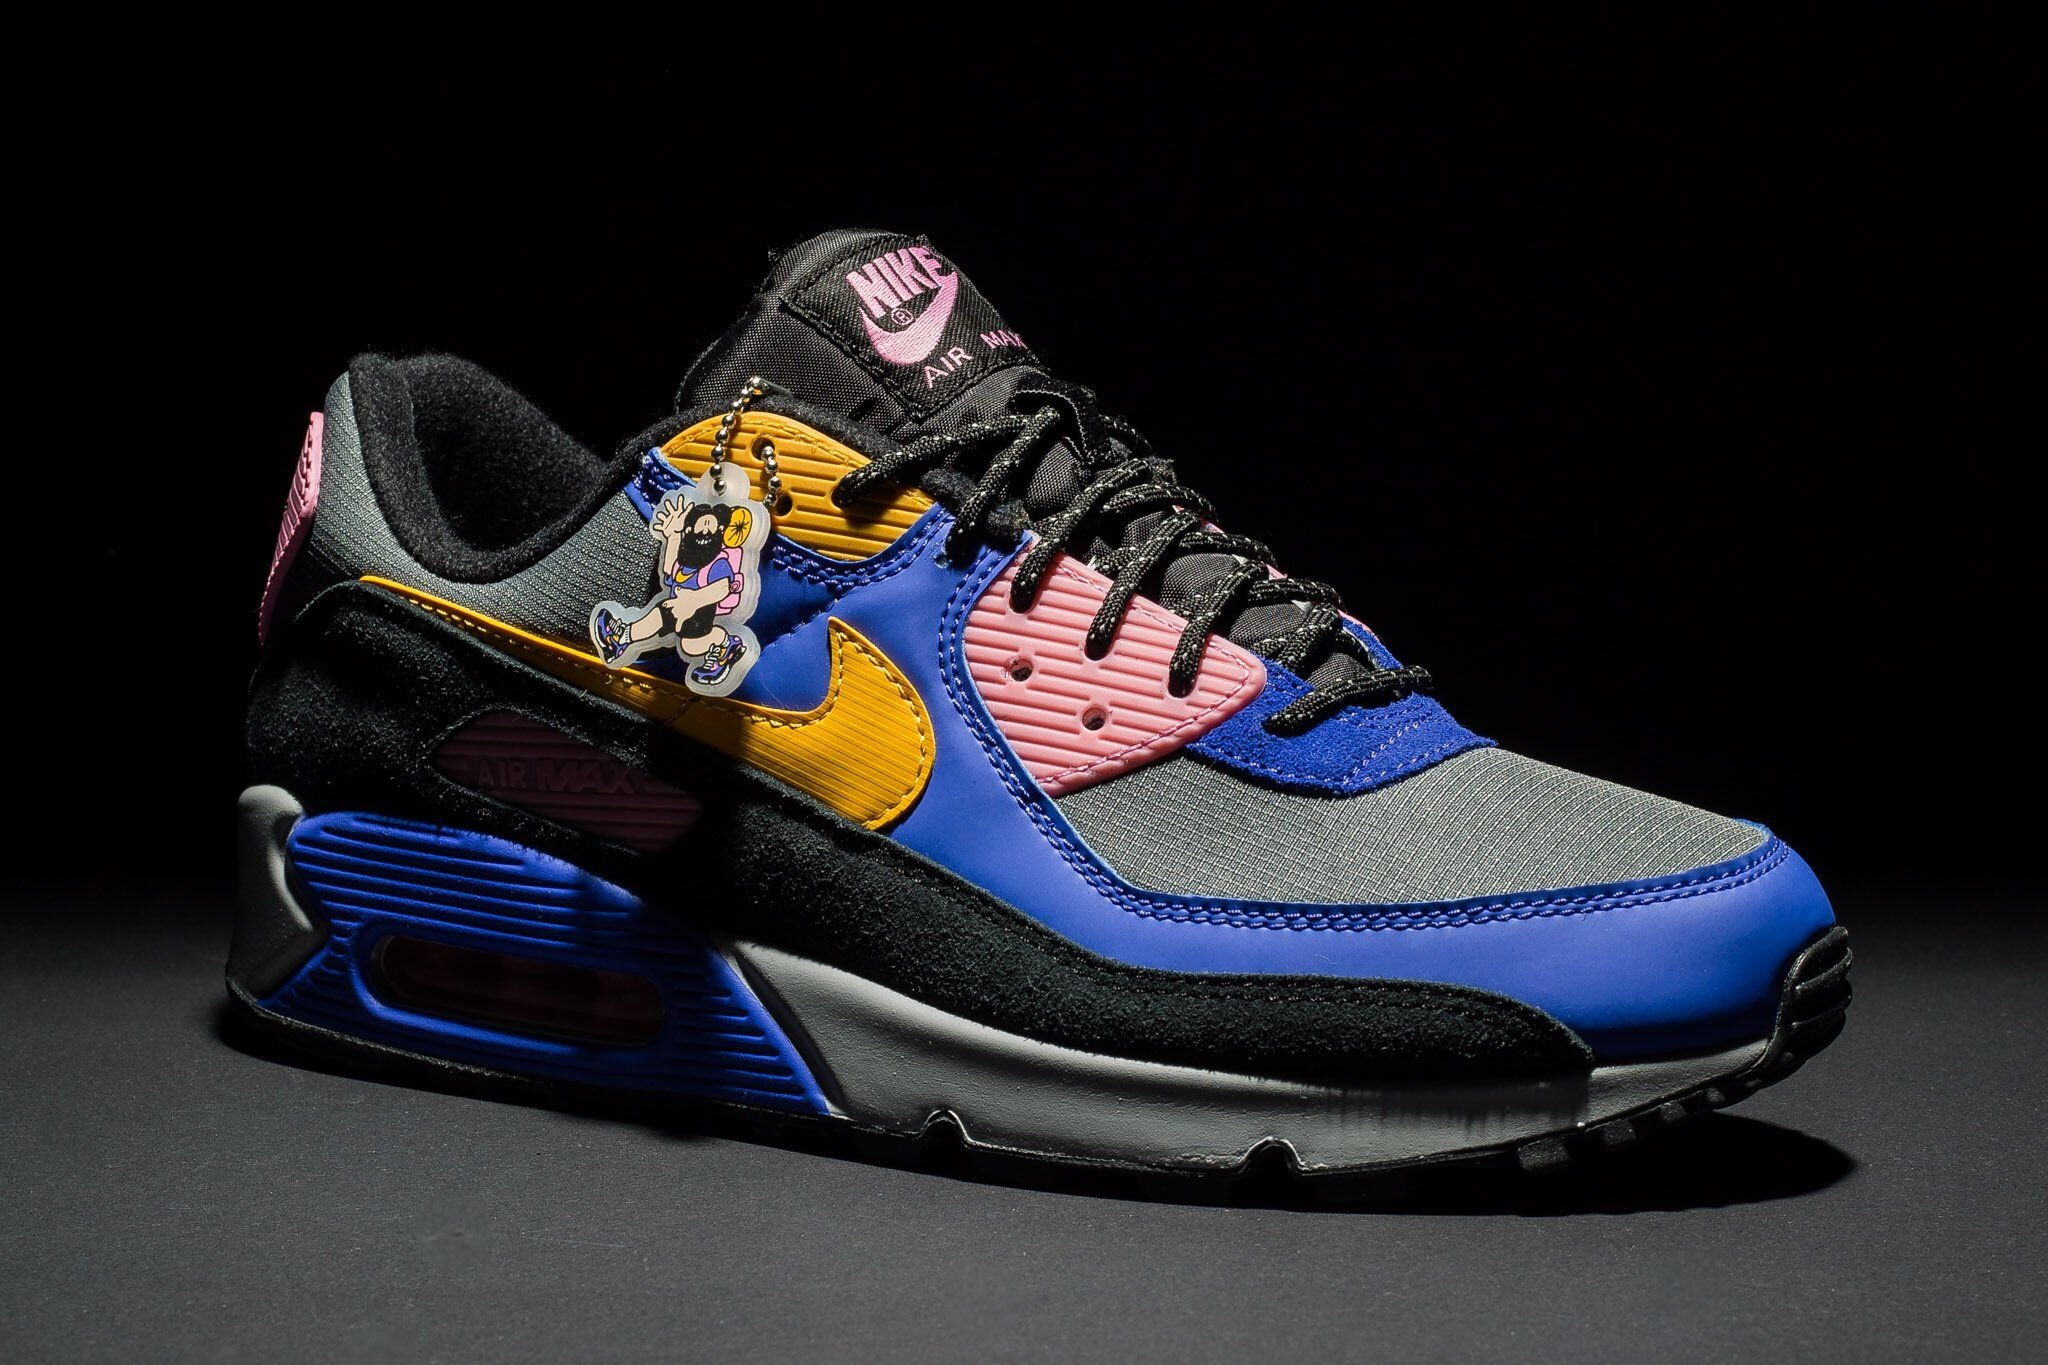 The Nike ACG Air Max 90 Is On Sale For $82.50! </p>                 <!--bof Quantity Discounts table -->                                 <!--eof Quantity Discounts table -->                  <!--bof Product URL -->                                 <!--eof Product URL -->             </div>             <div id=